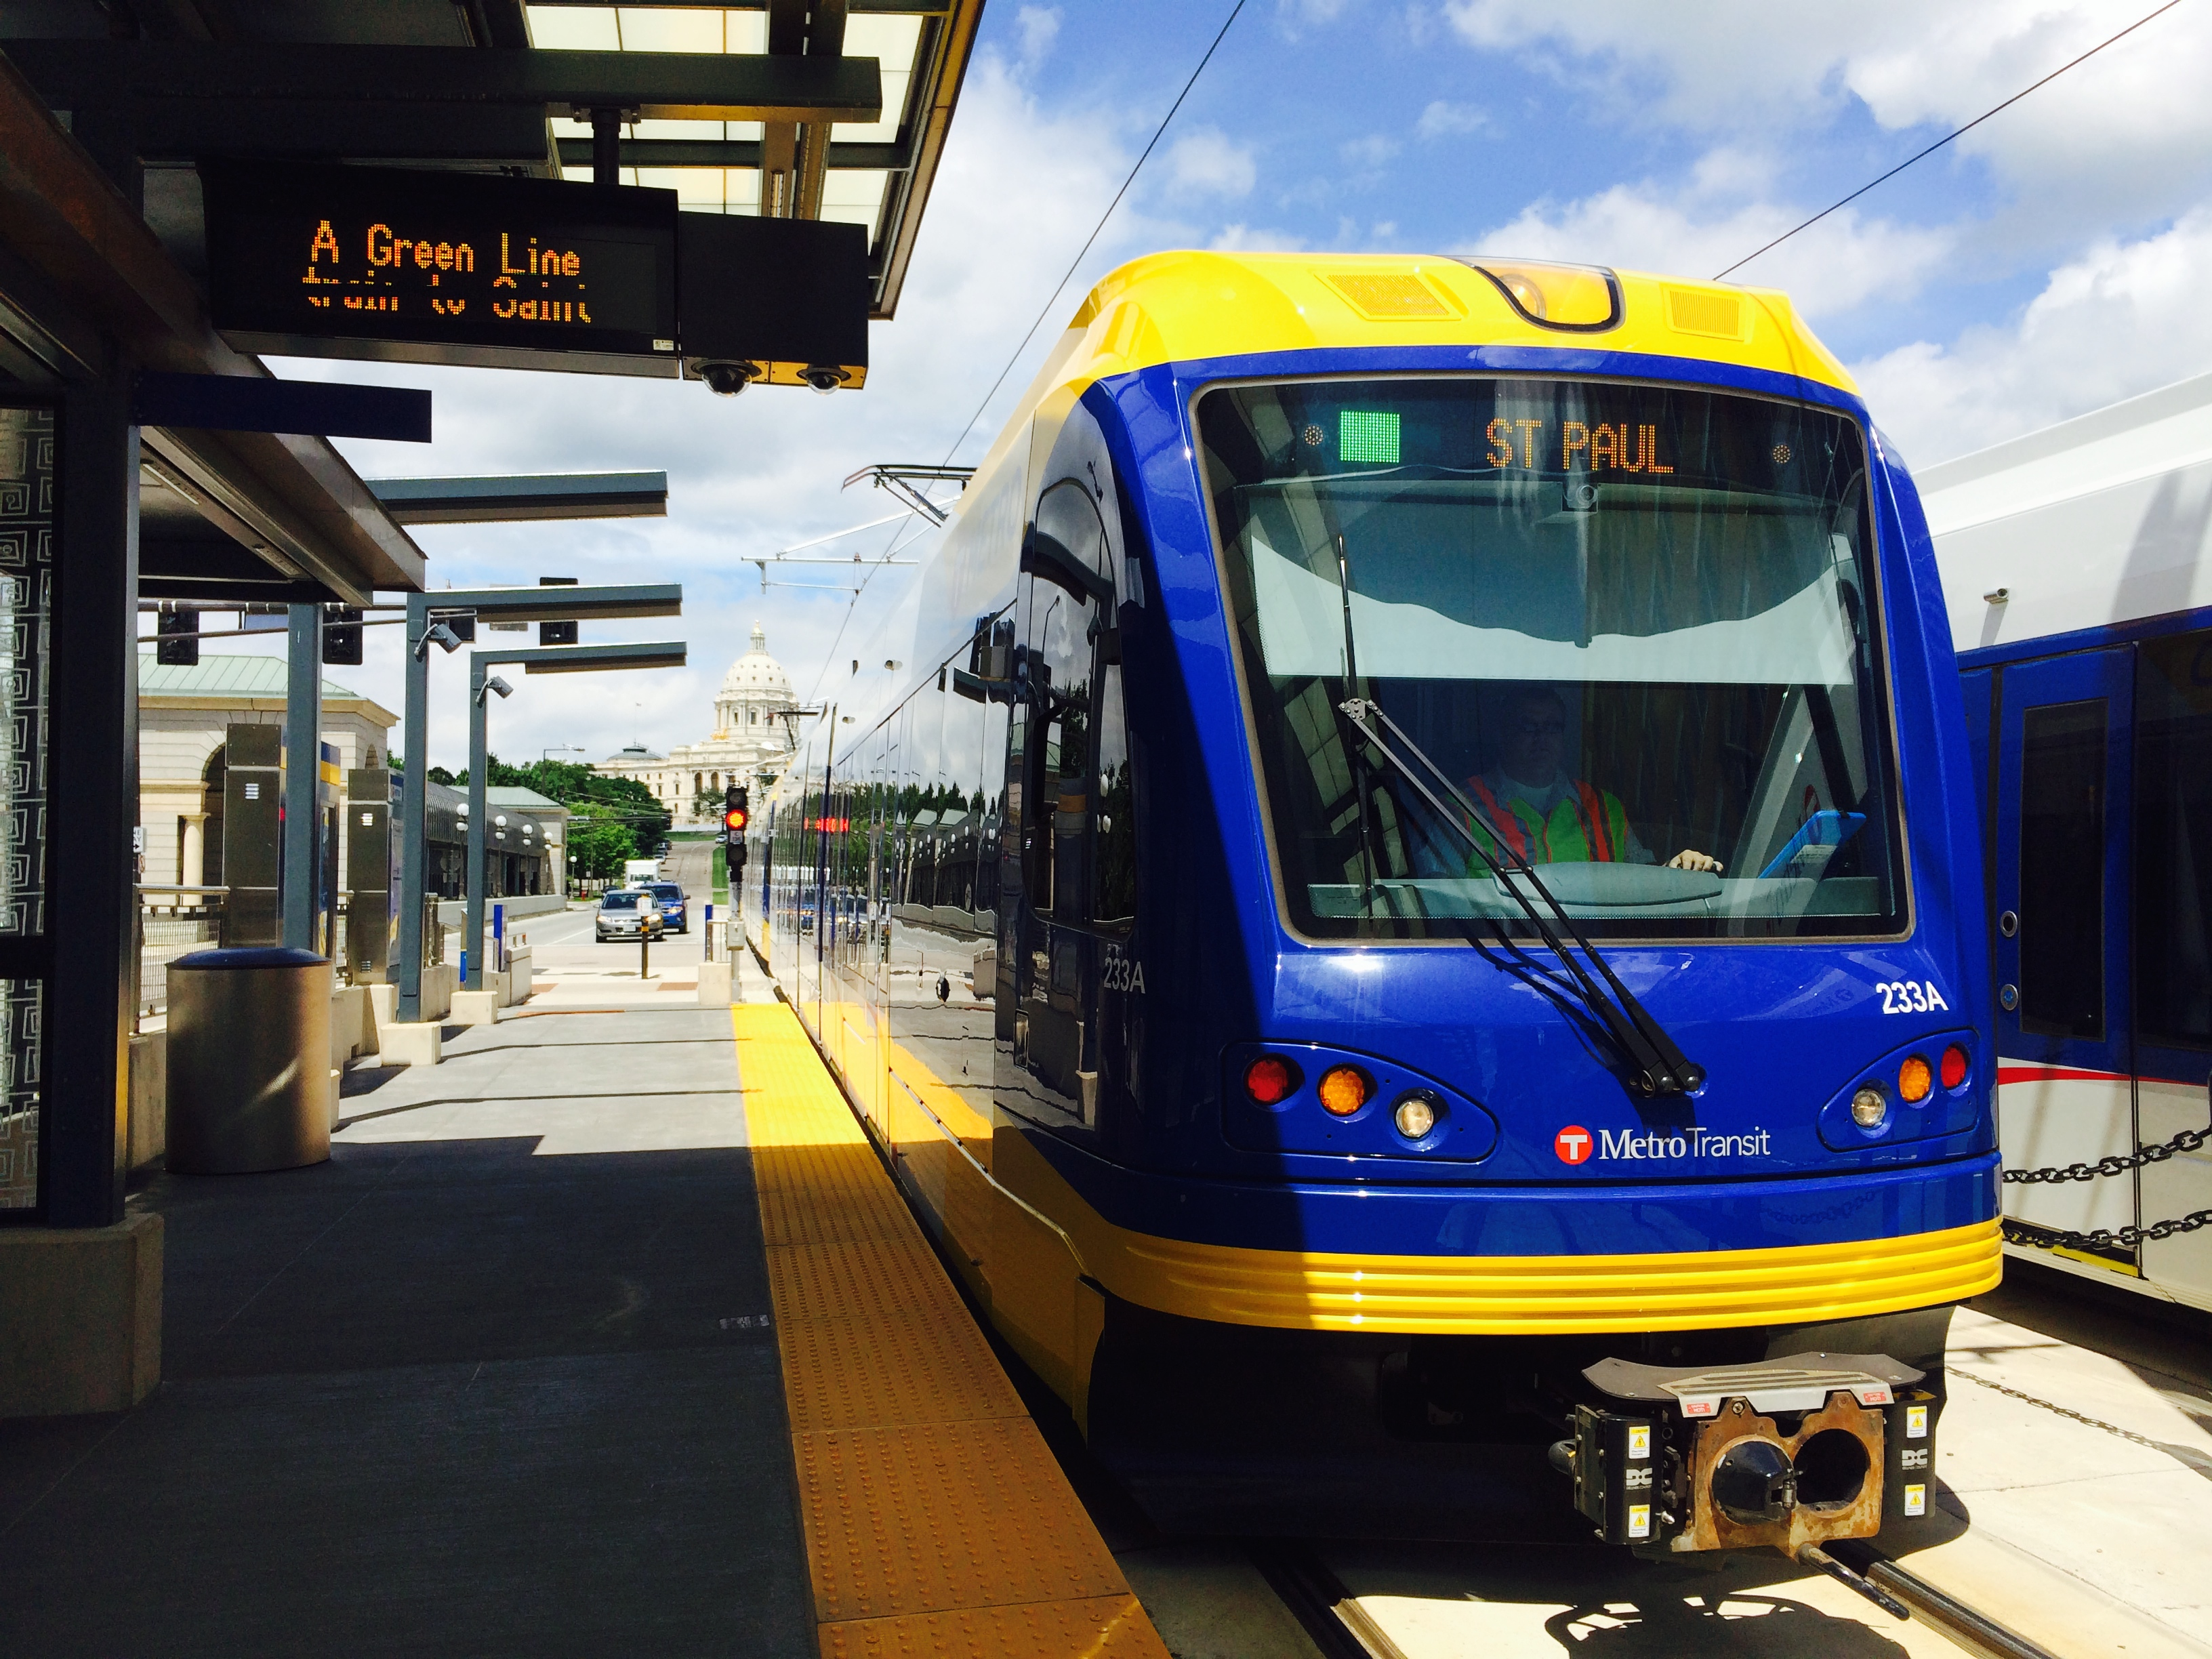 A Green Line train arriving at a station in downtown Saint Paul.